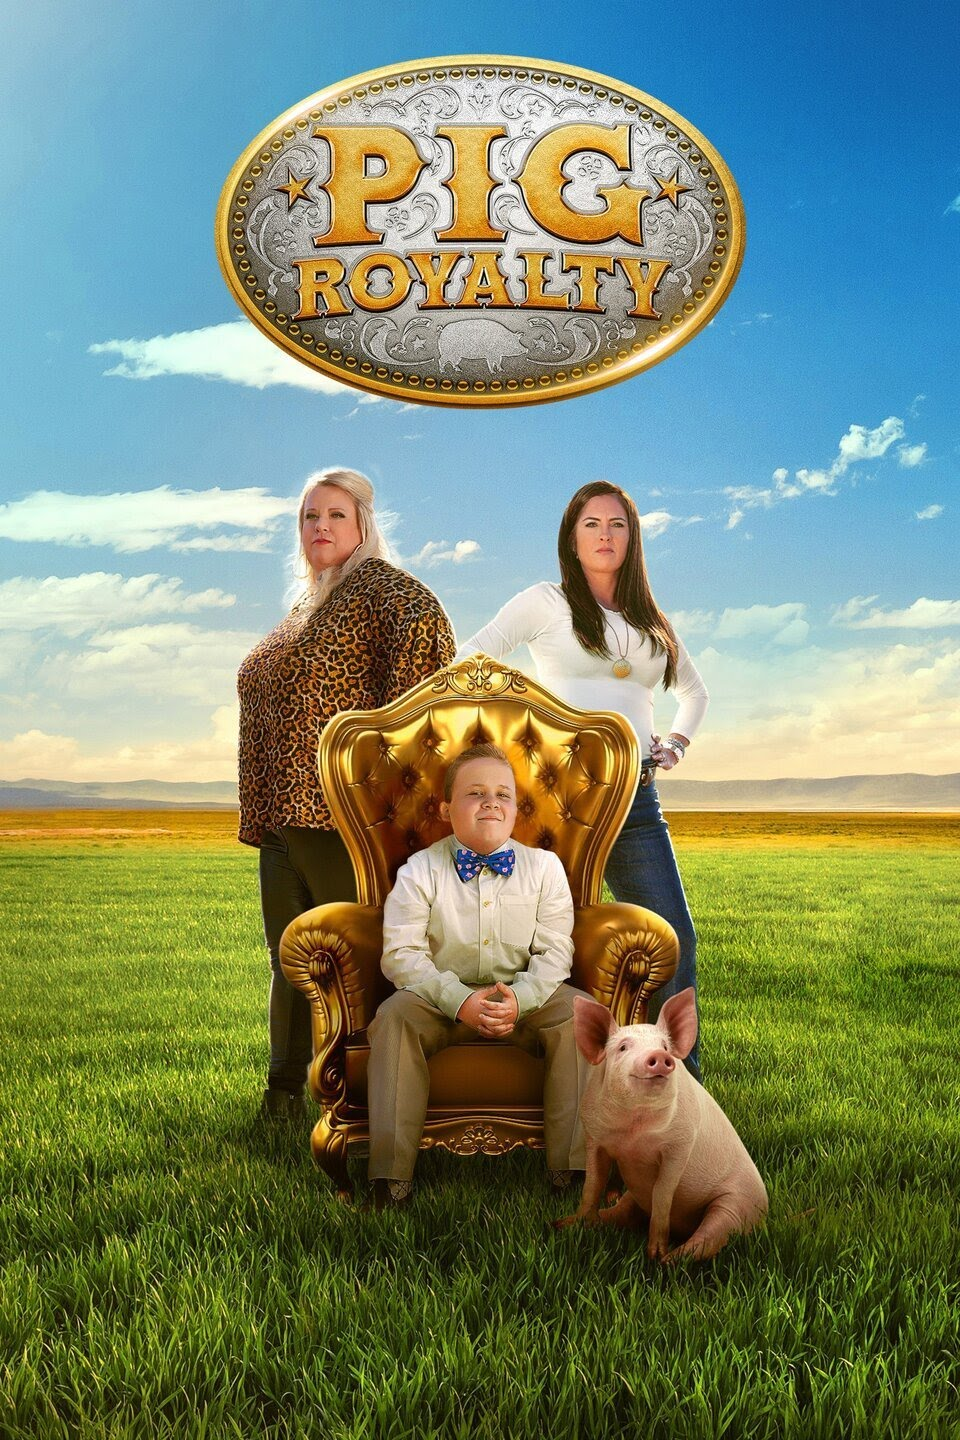 Pig Royalty - Season 1 Episode 7 - It's All About the Kids